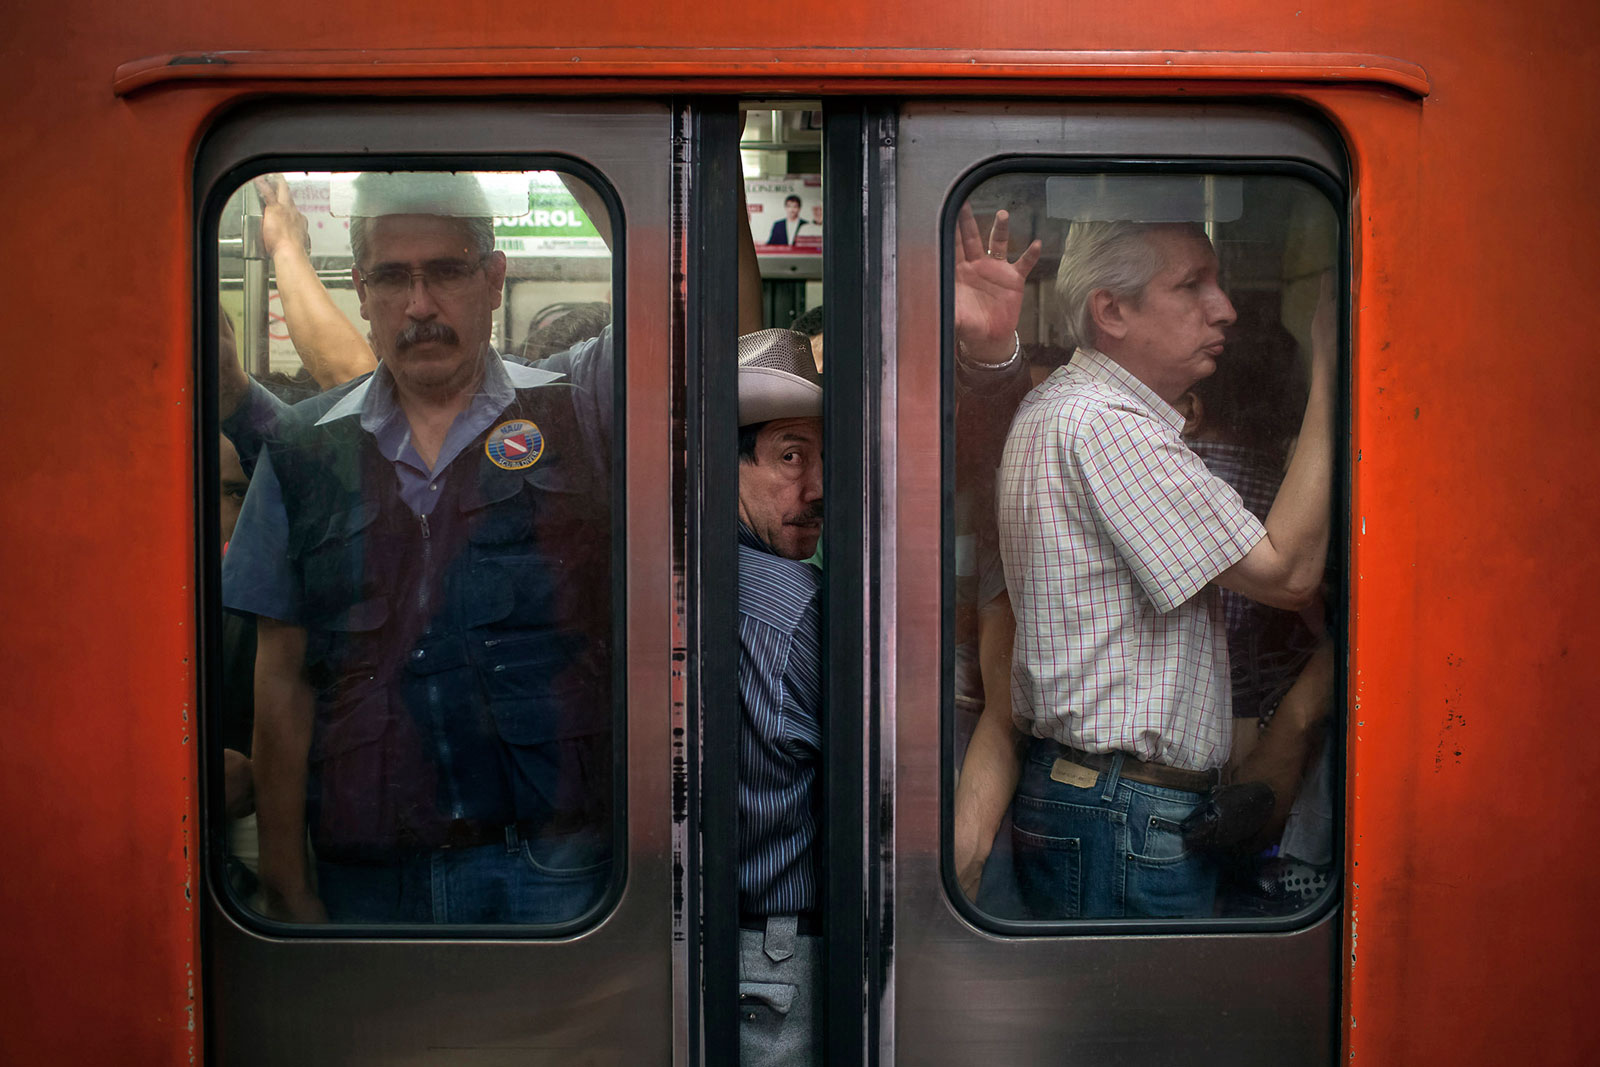 The door closes on a crowded subway car at the Pantitlan Metro station in Mexico City